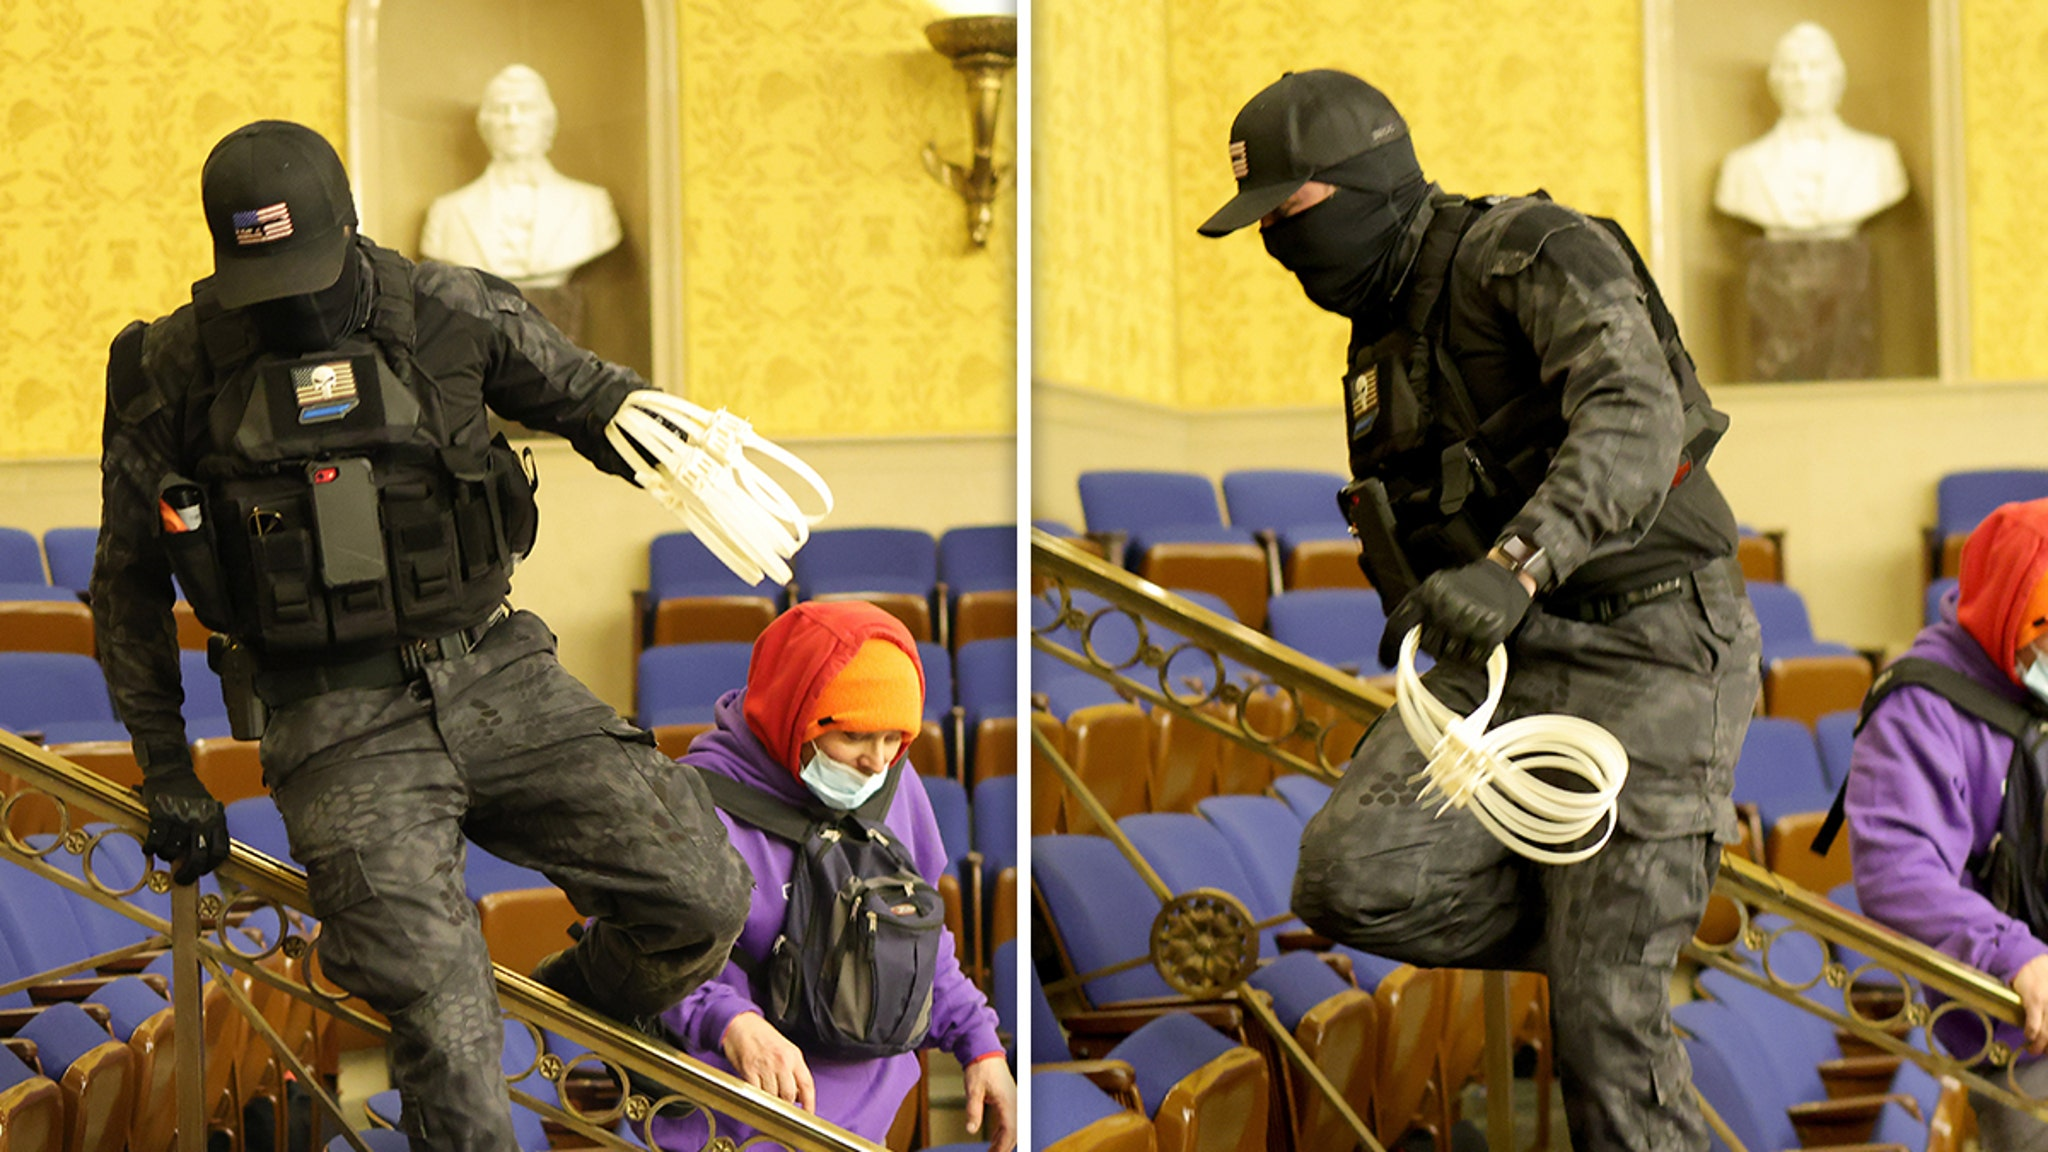 Capitol Rioters with Zip Ties Suggest Plan to Take Hostages